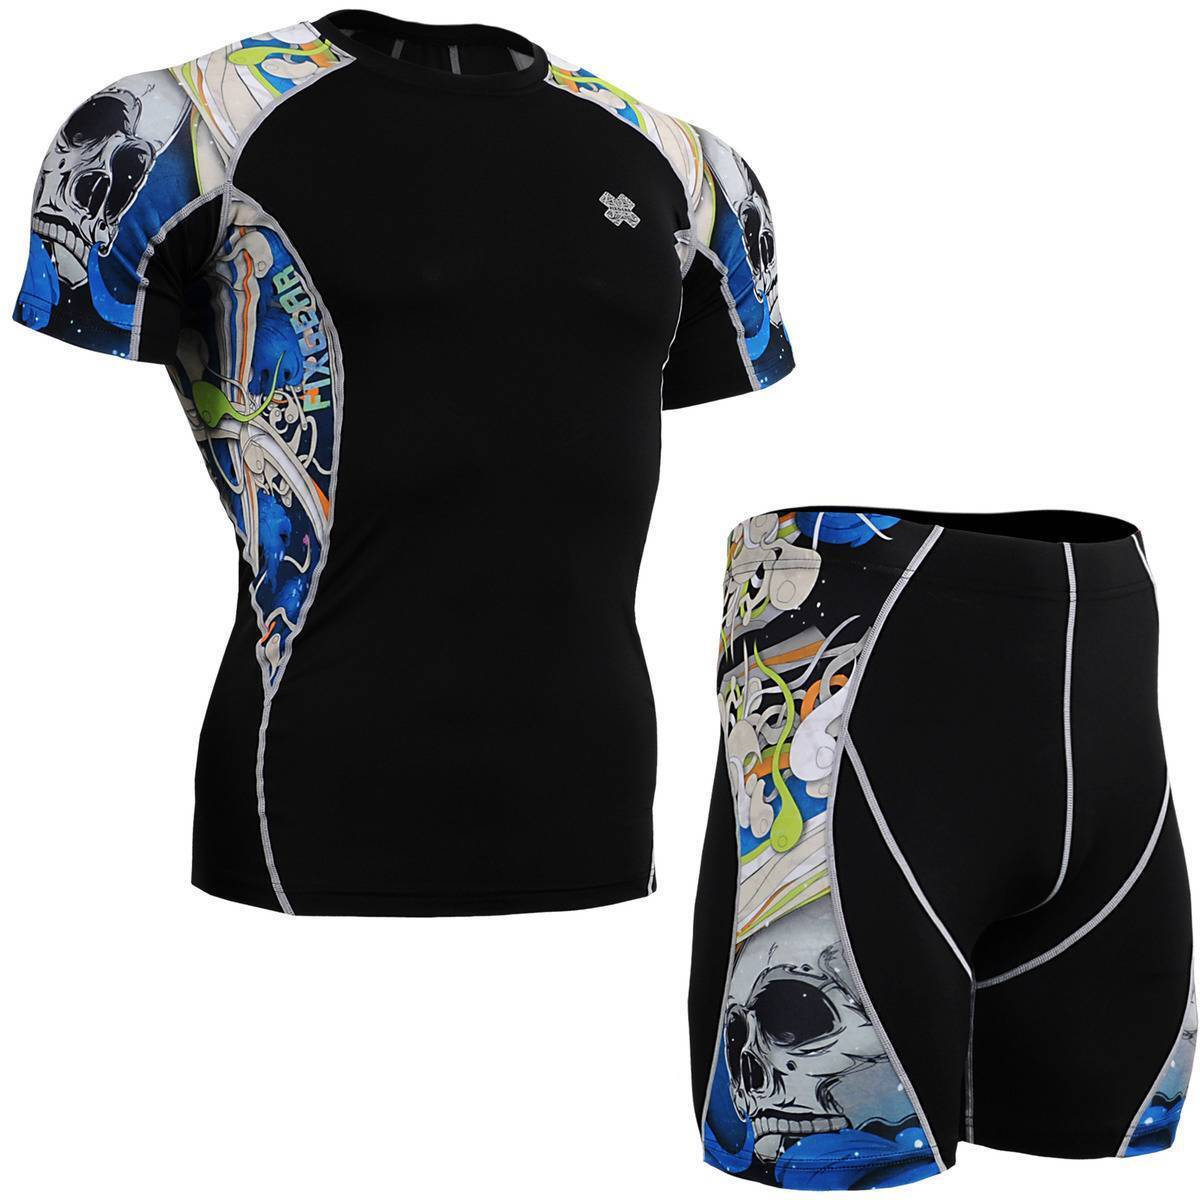 FIXGEAR C2S P2S-B19B SET Compression Shirts & Shorts Skin-tight MMA Workout GYM